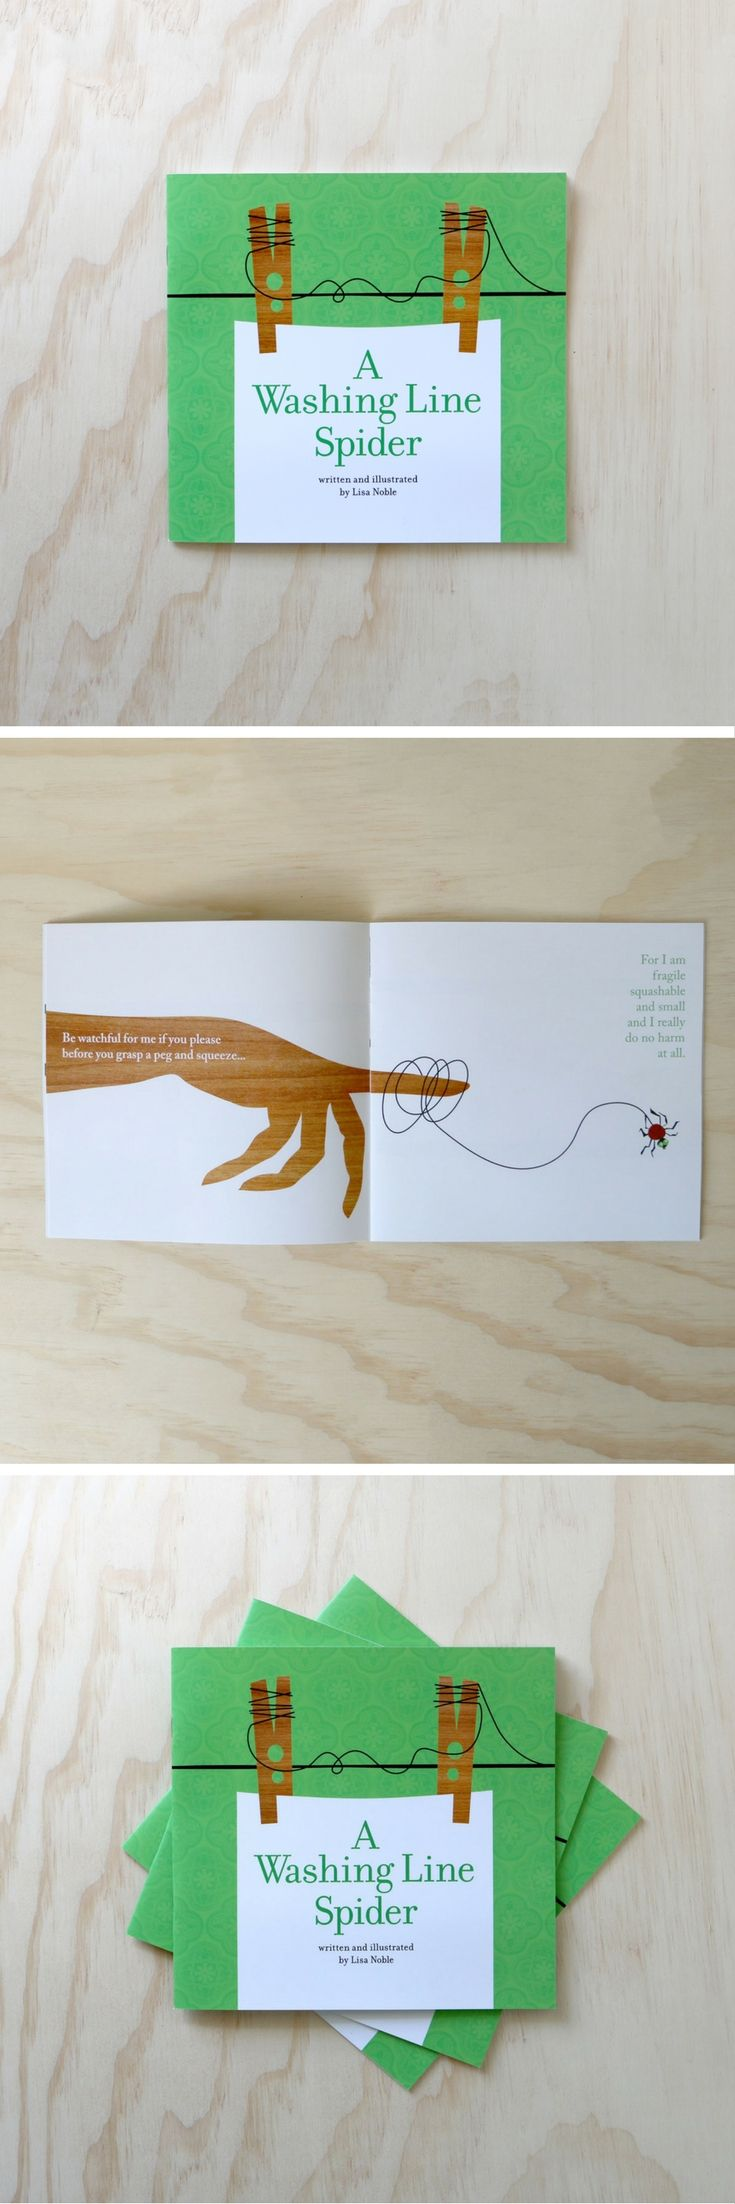 A spider makes its home on the pegs on a washing line.  Sometimes it gives people a fright, but all it wants to do is have some fun... A Washing Line Spider childrens book is now available in our Etsy store! Written and illustrated by Lisa Noble.